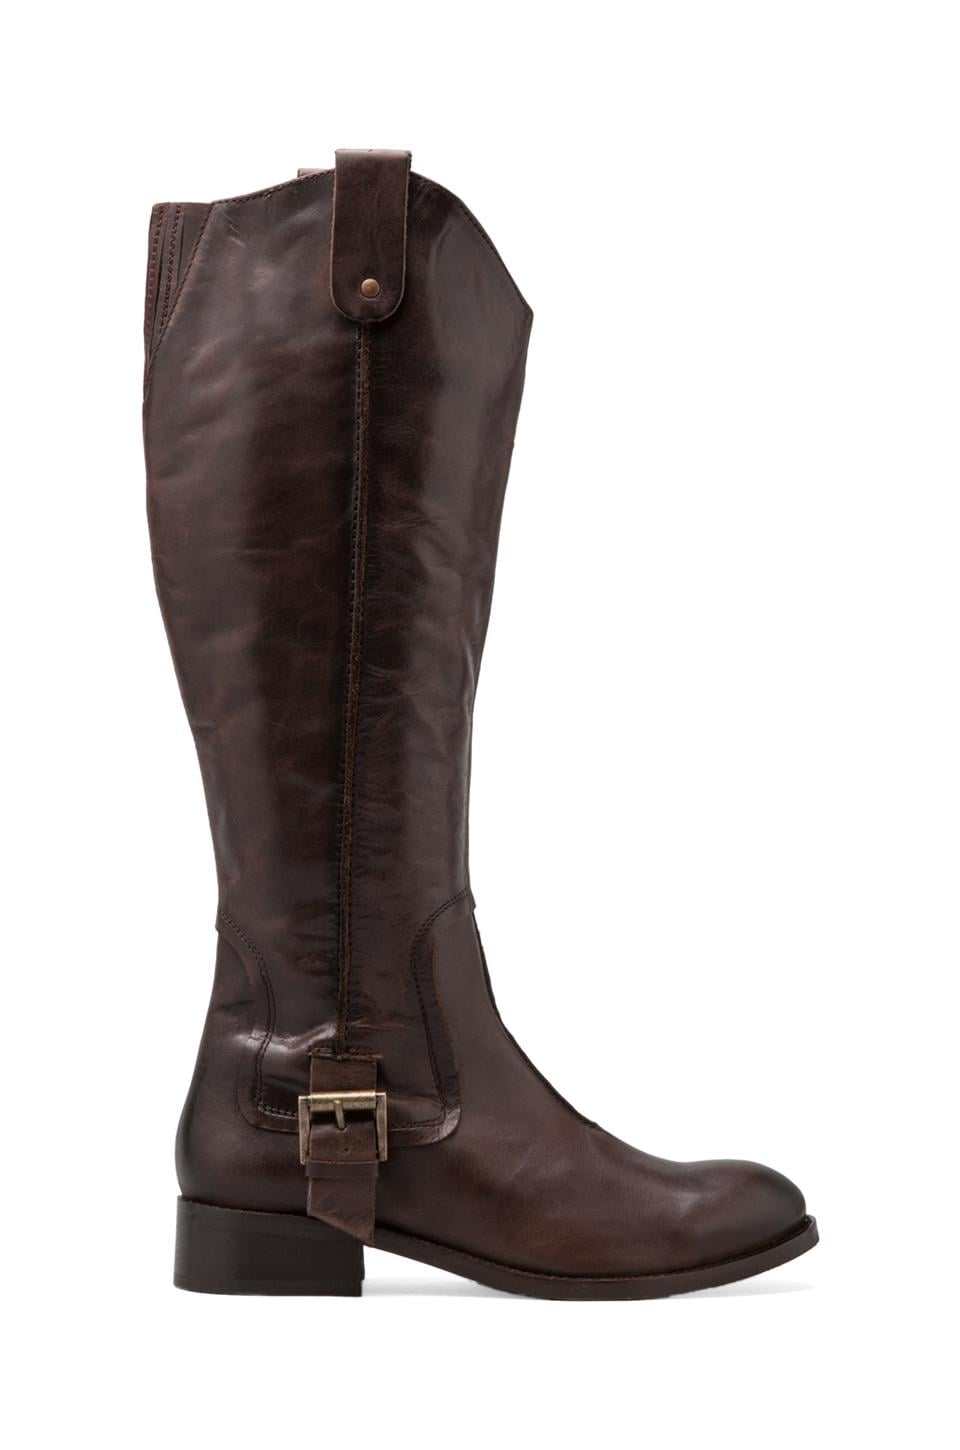 Seychelles Trust In Me High Boot in Brown